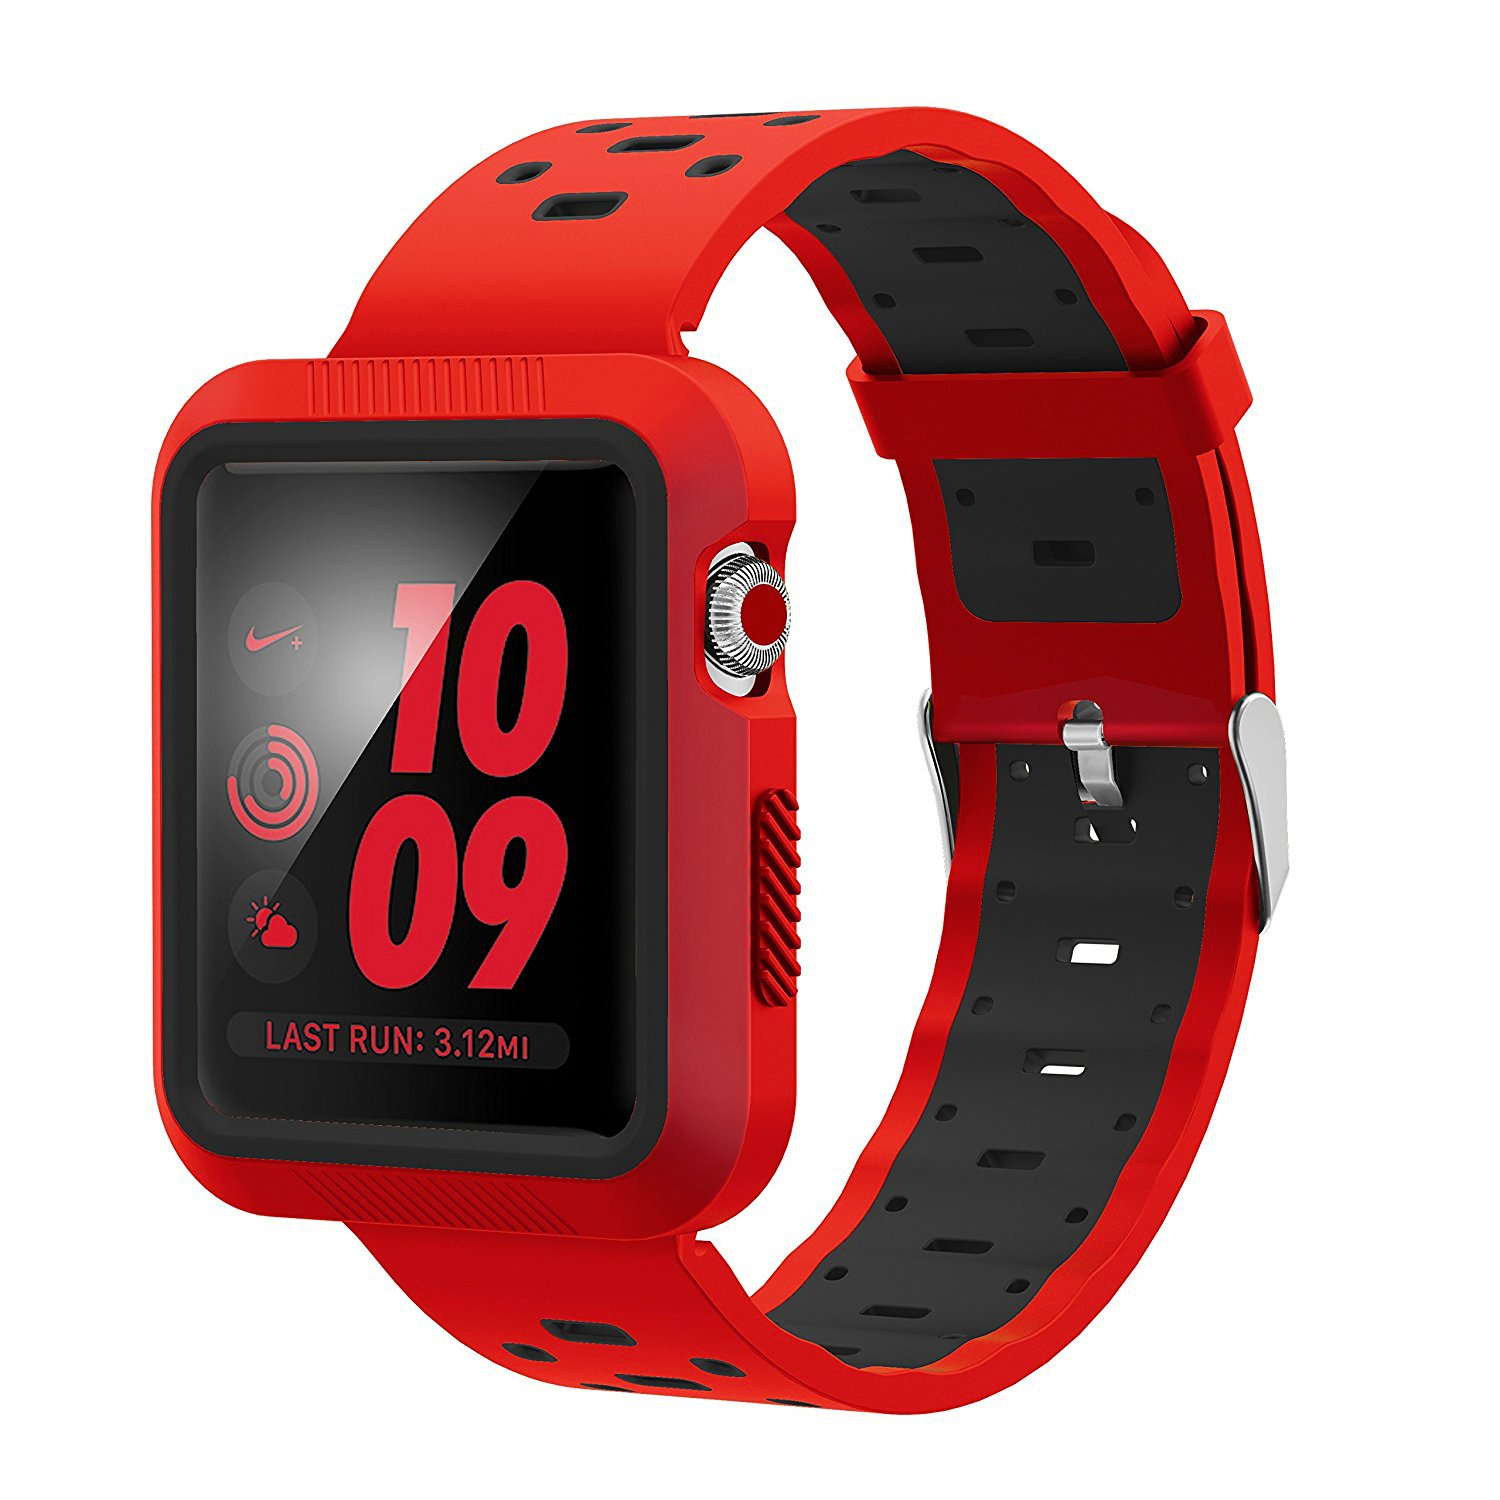 EloBeth For Apple Watch Band Soft Silicone Sport Style Replacement Wrist Strap Stripe Color Splicing